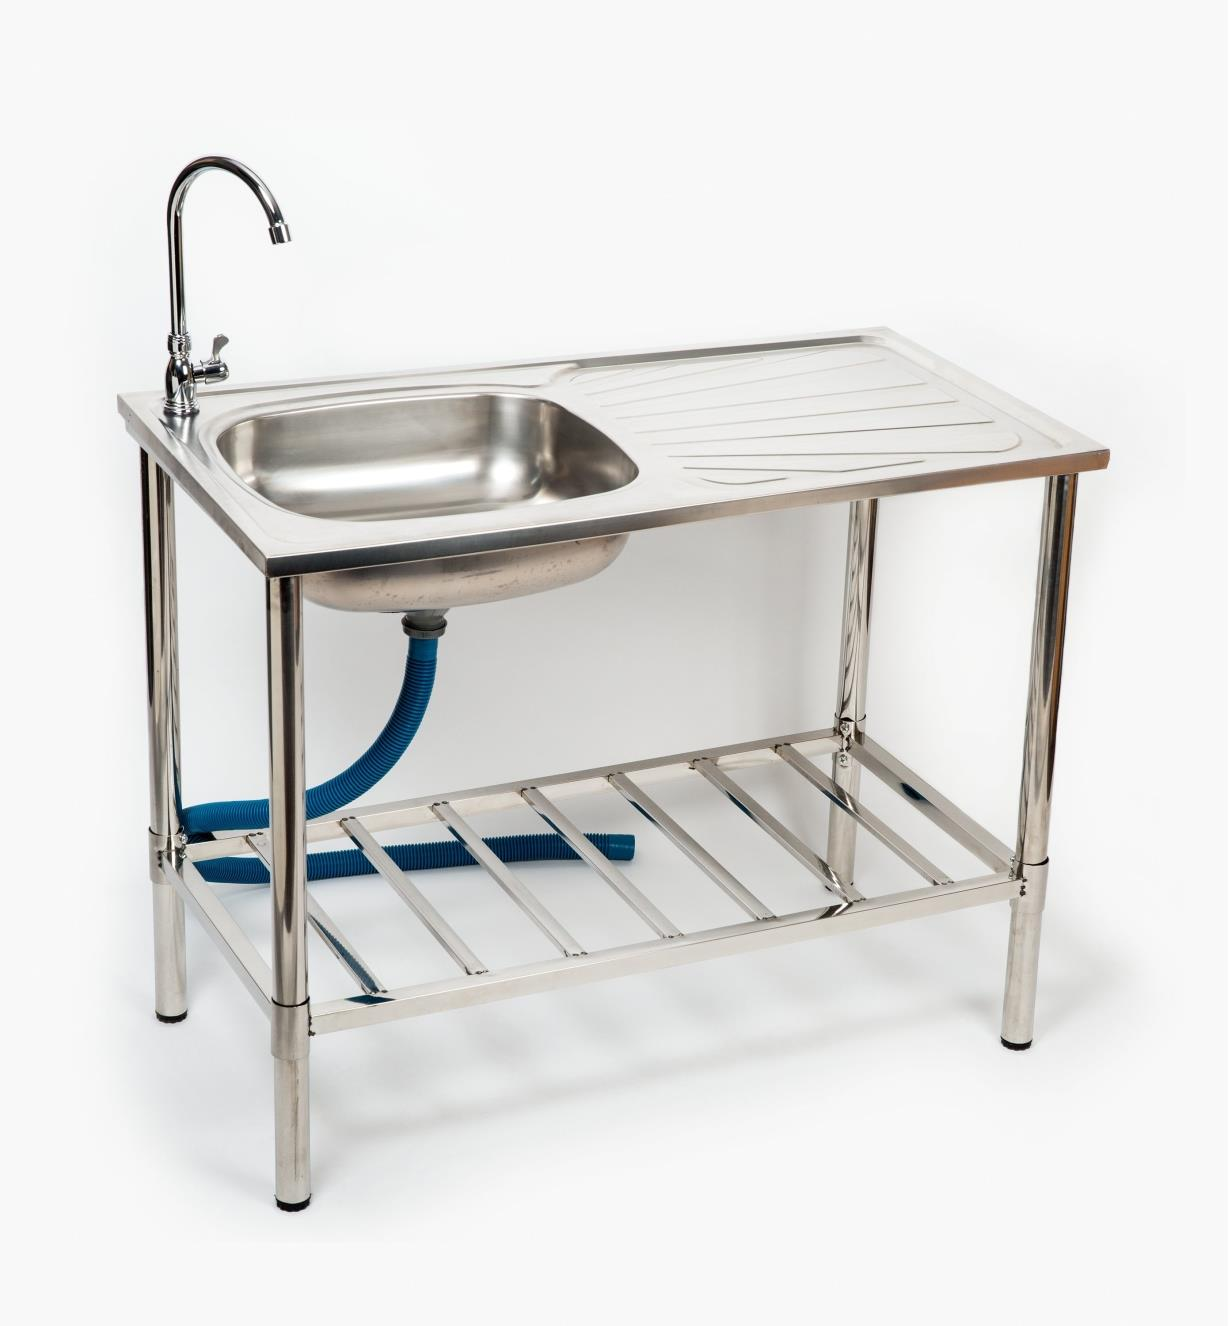 XB206 - Stainless-Steel Outdoor Wash Table